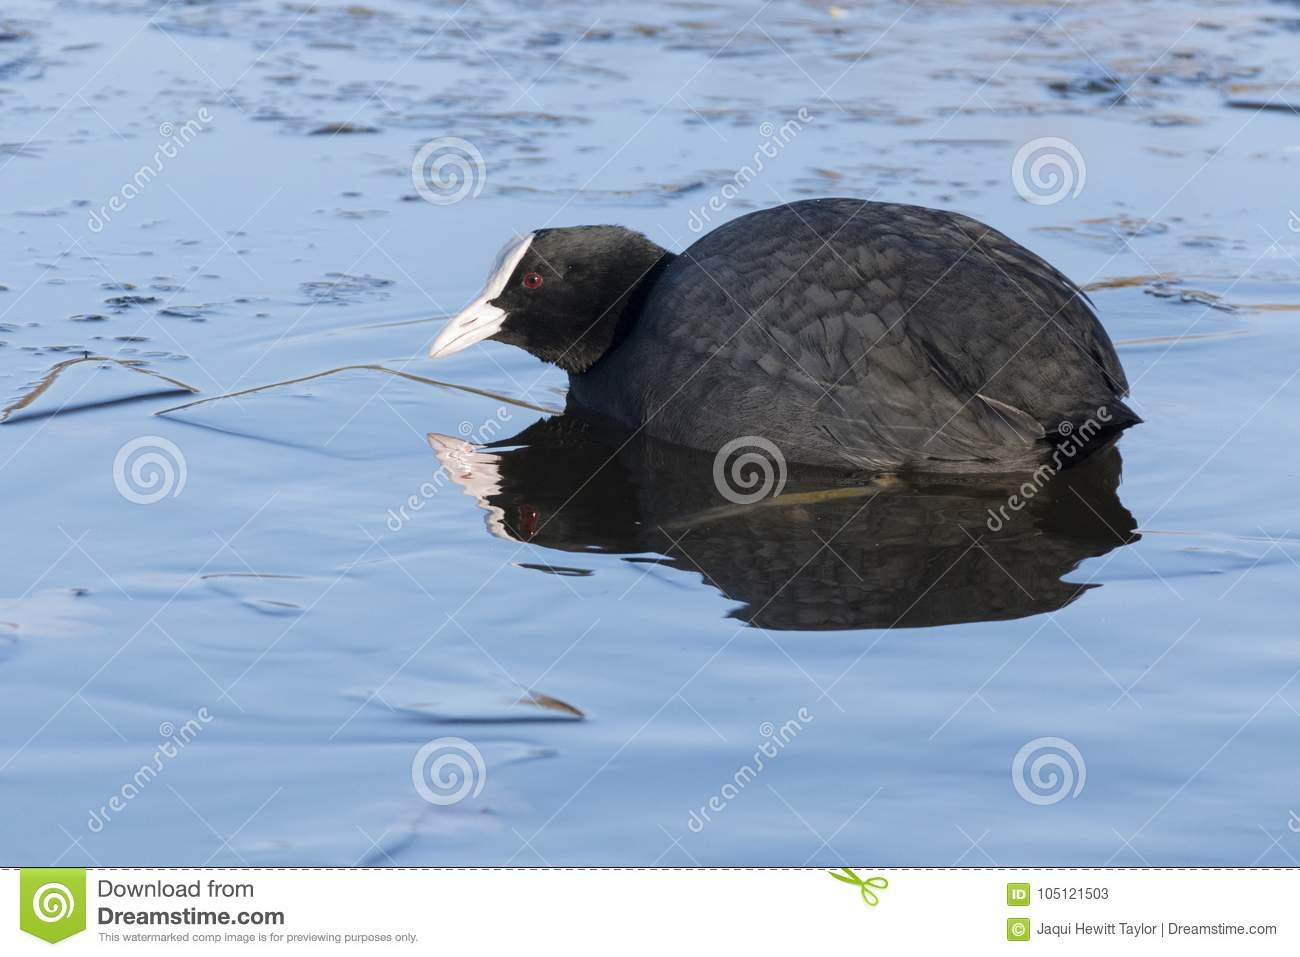 A coot swimming in icy water : Southampton Common